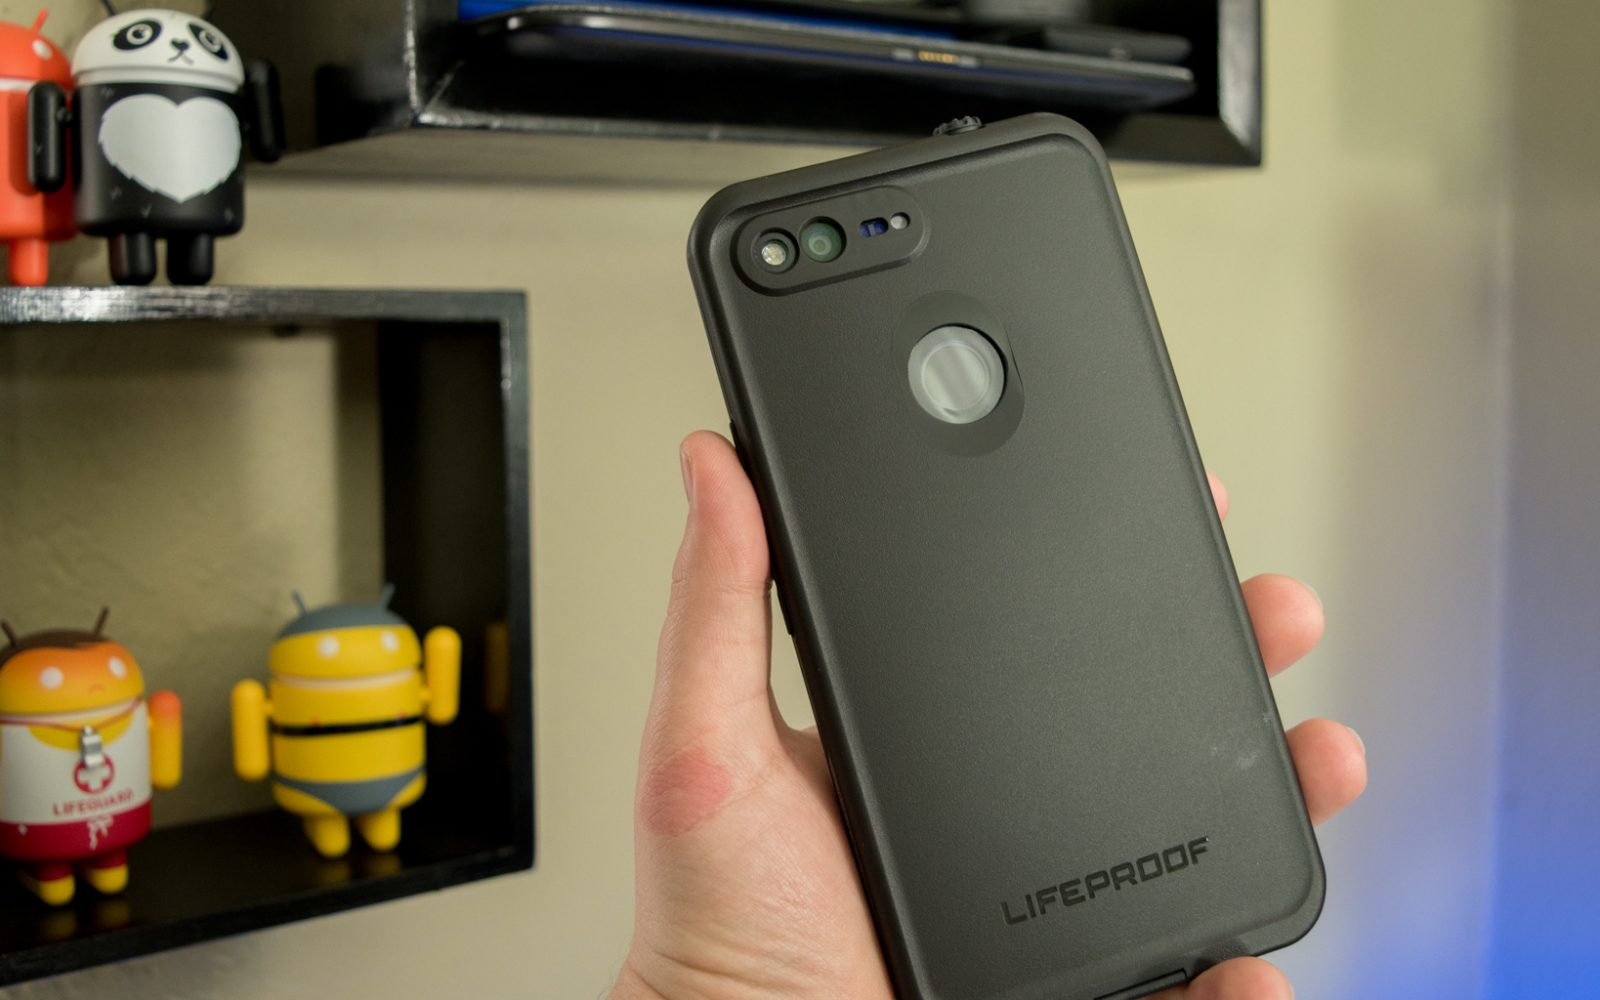 promo code 6d650 402fe Hands-on: The FRE LifeProof case is great for protecting your Google ...